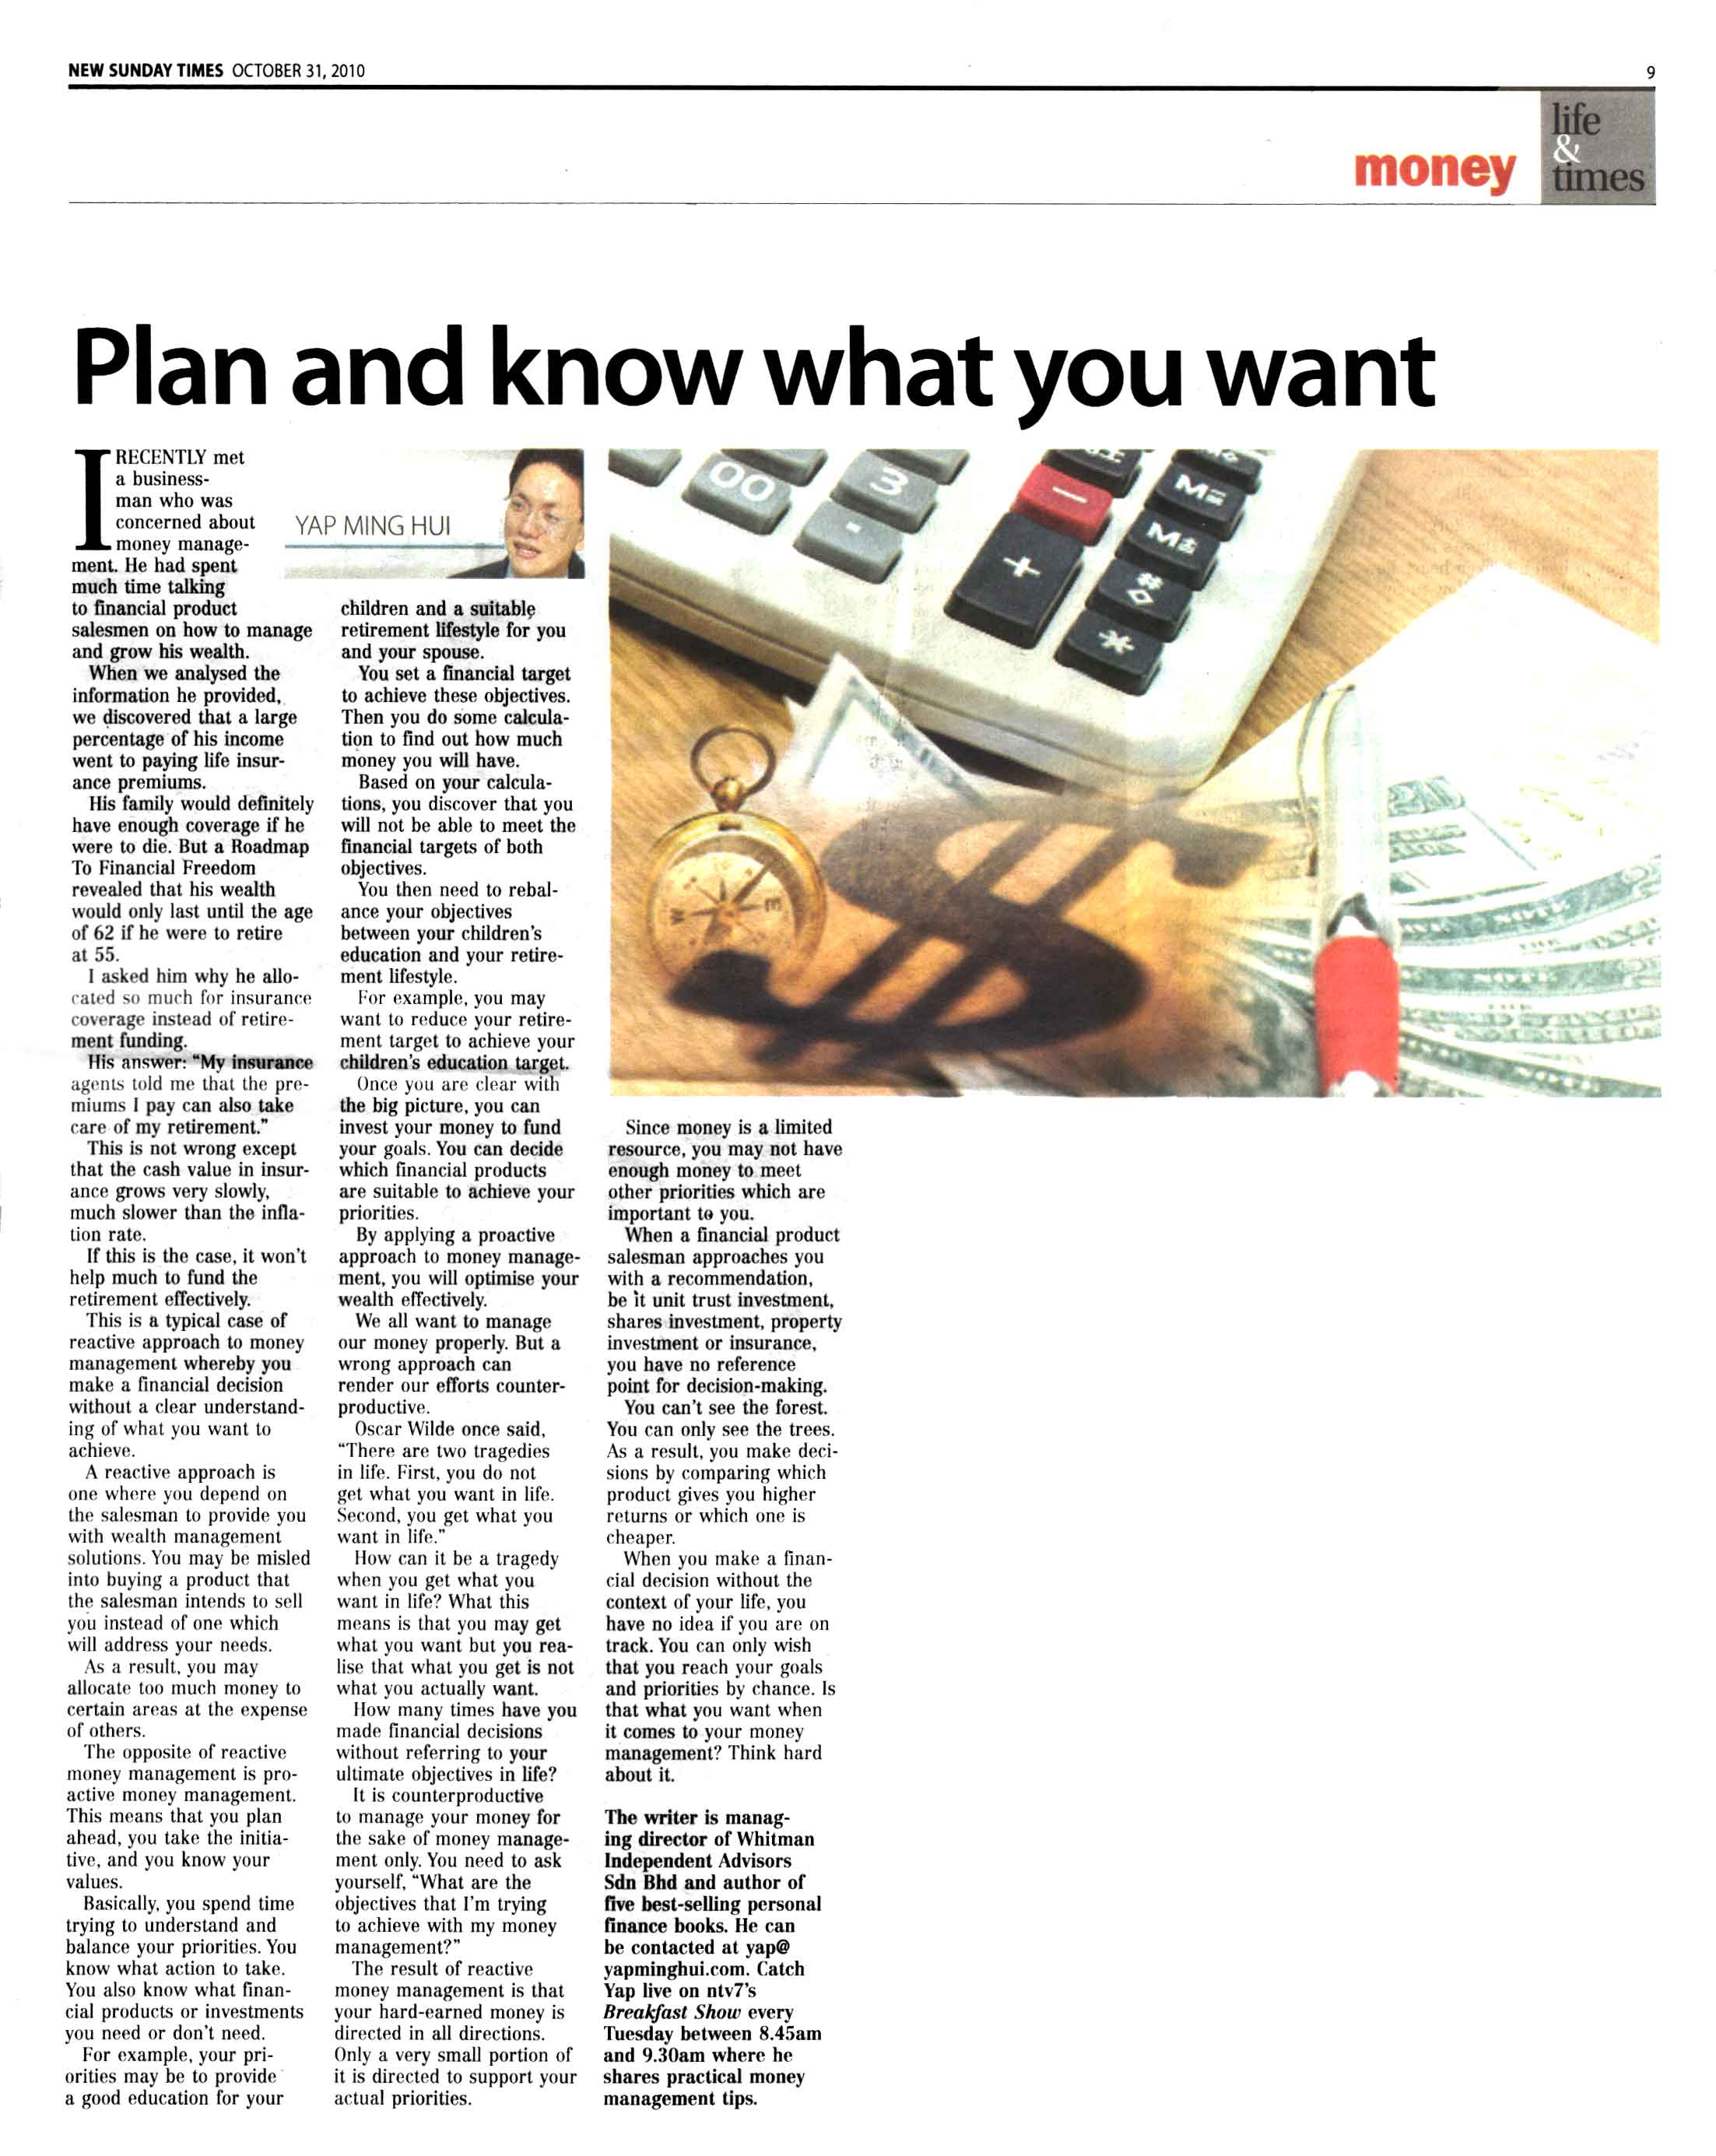 Plan and know what you want (New Sunday Times) - 31 Oct 2010